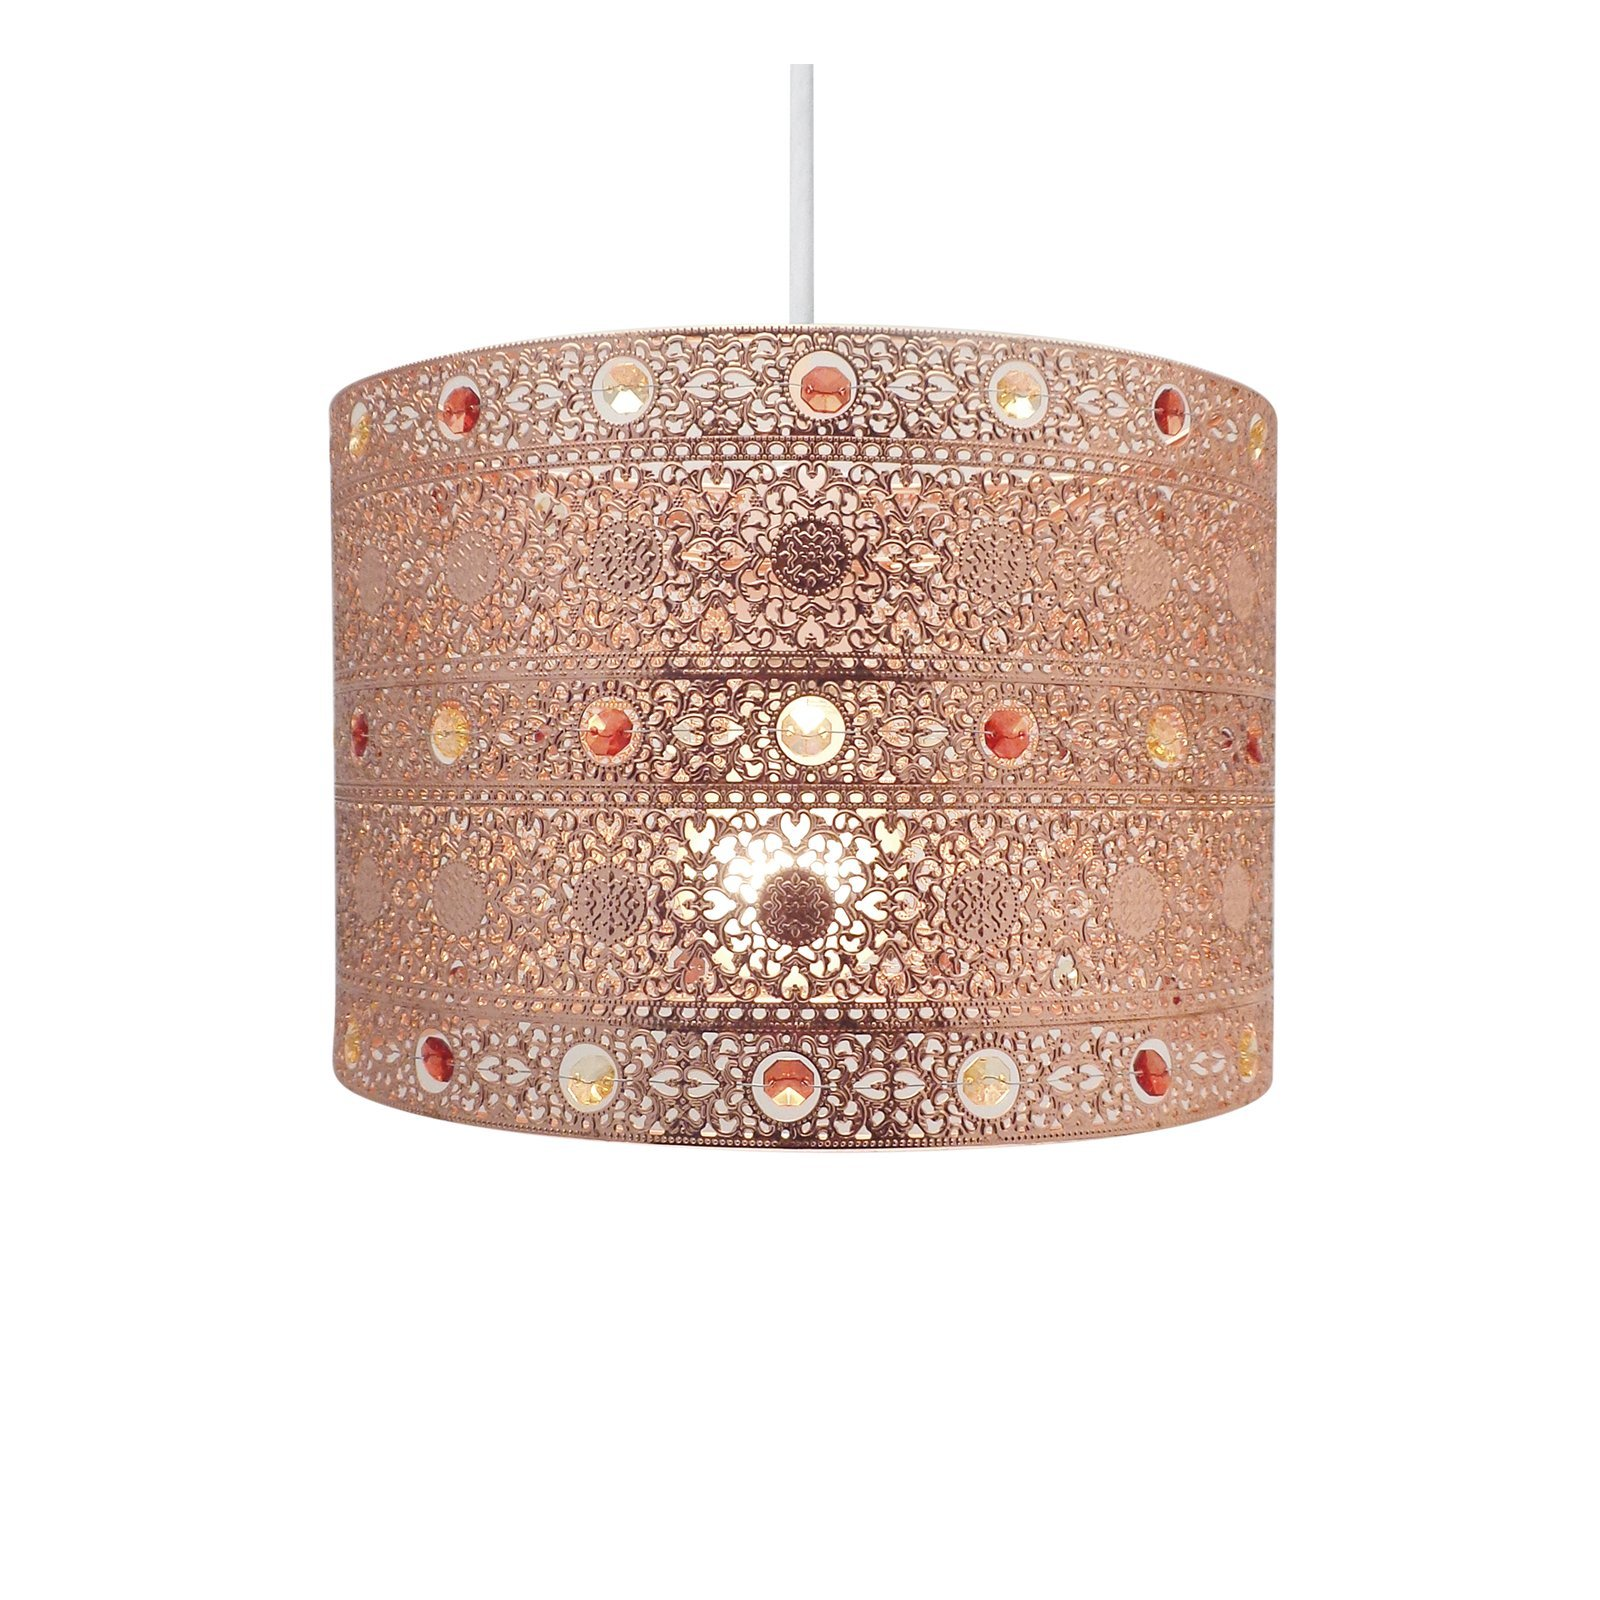 Copper ceiling light shades amazon copper gem moroccan style chandelier ceiling light shade fitting round universal copper aloadofball Gallery